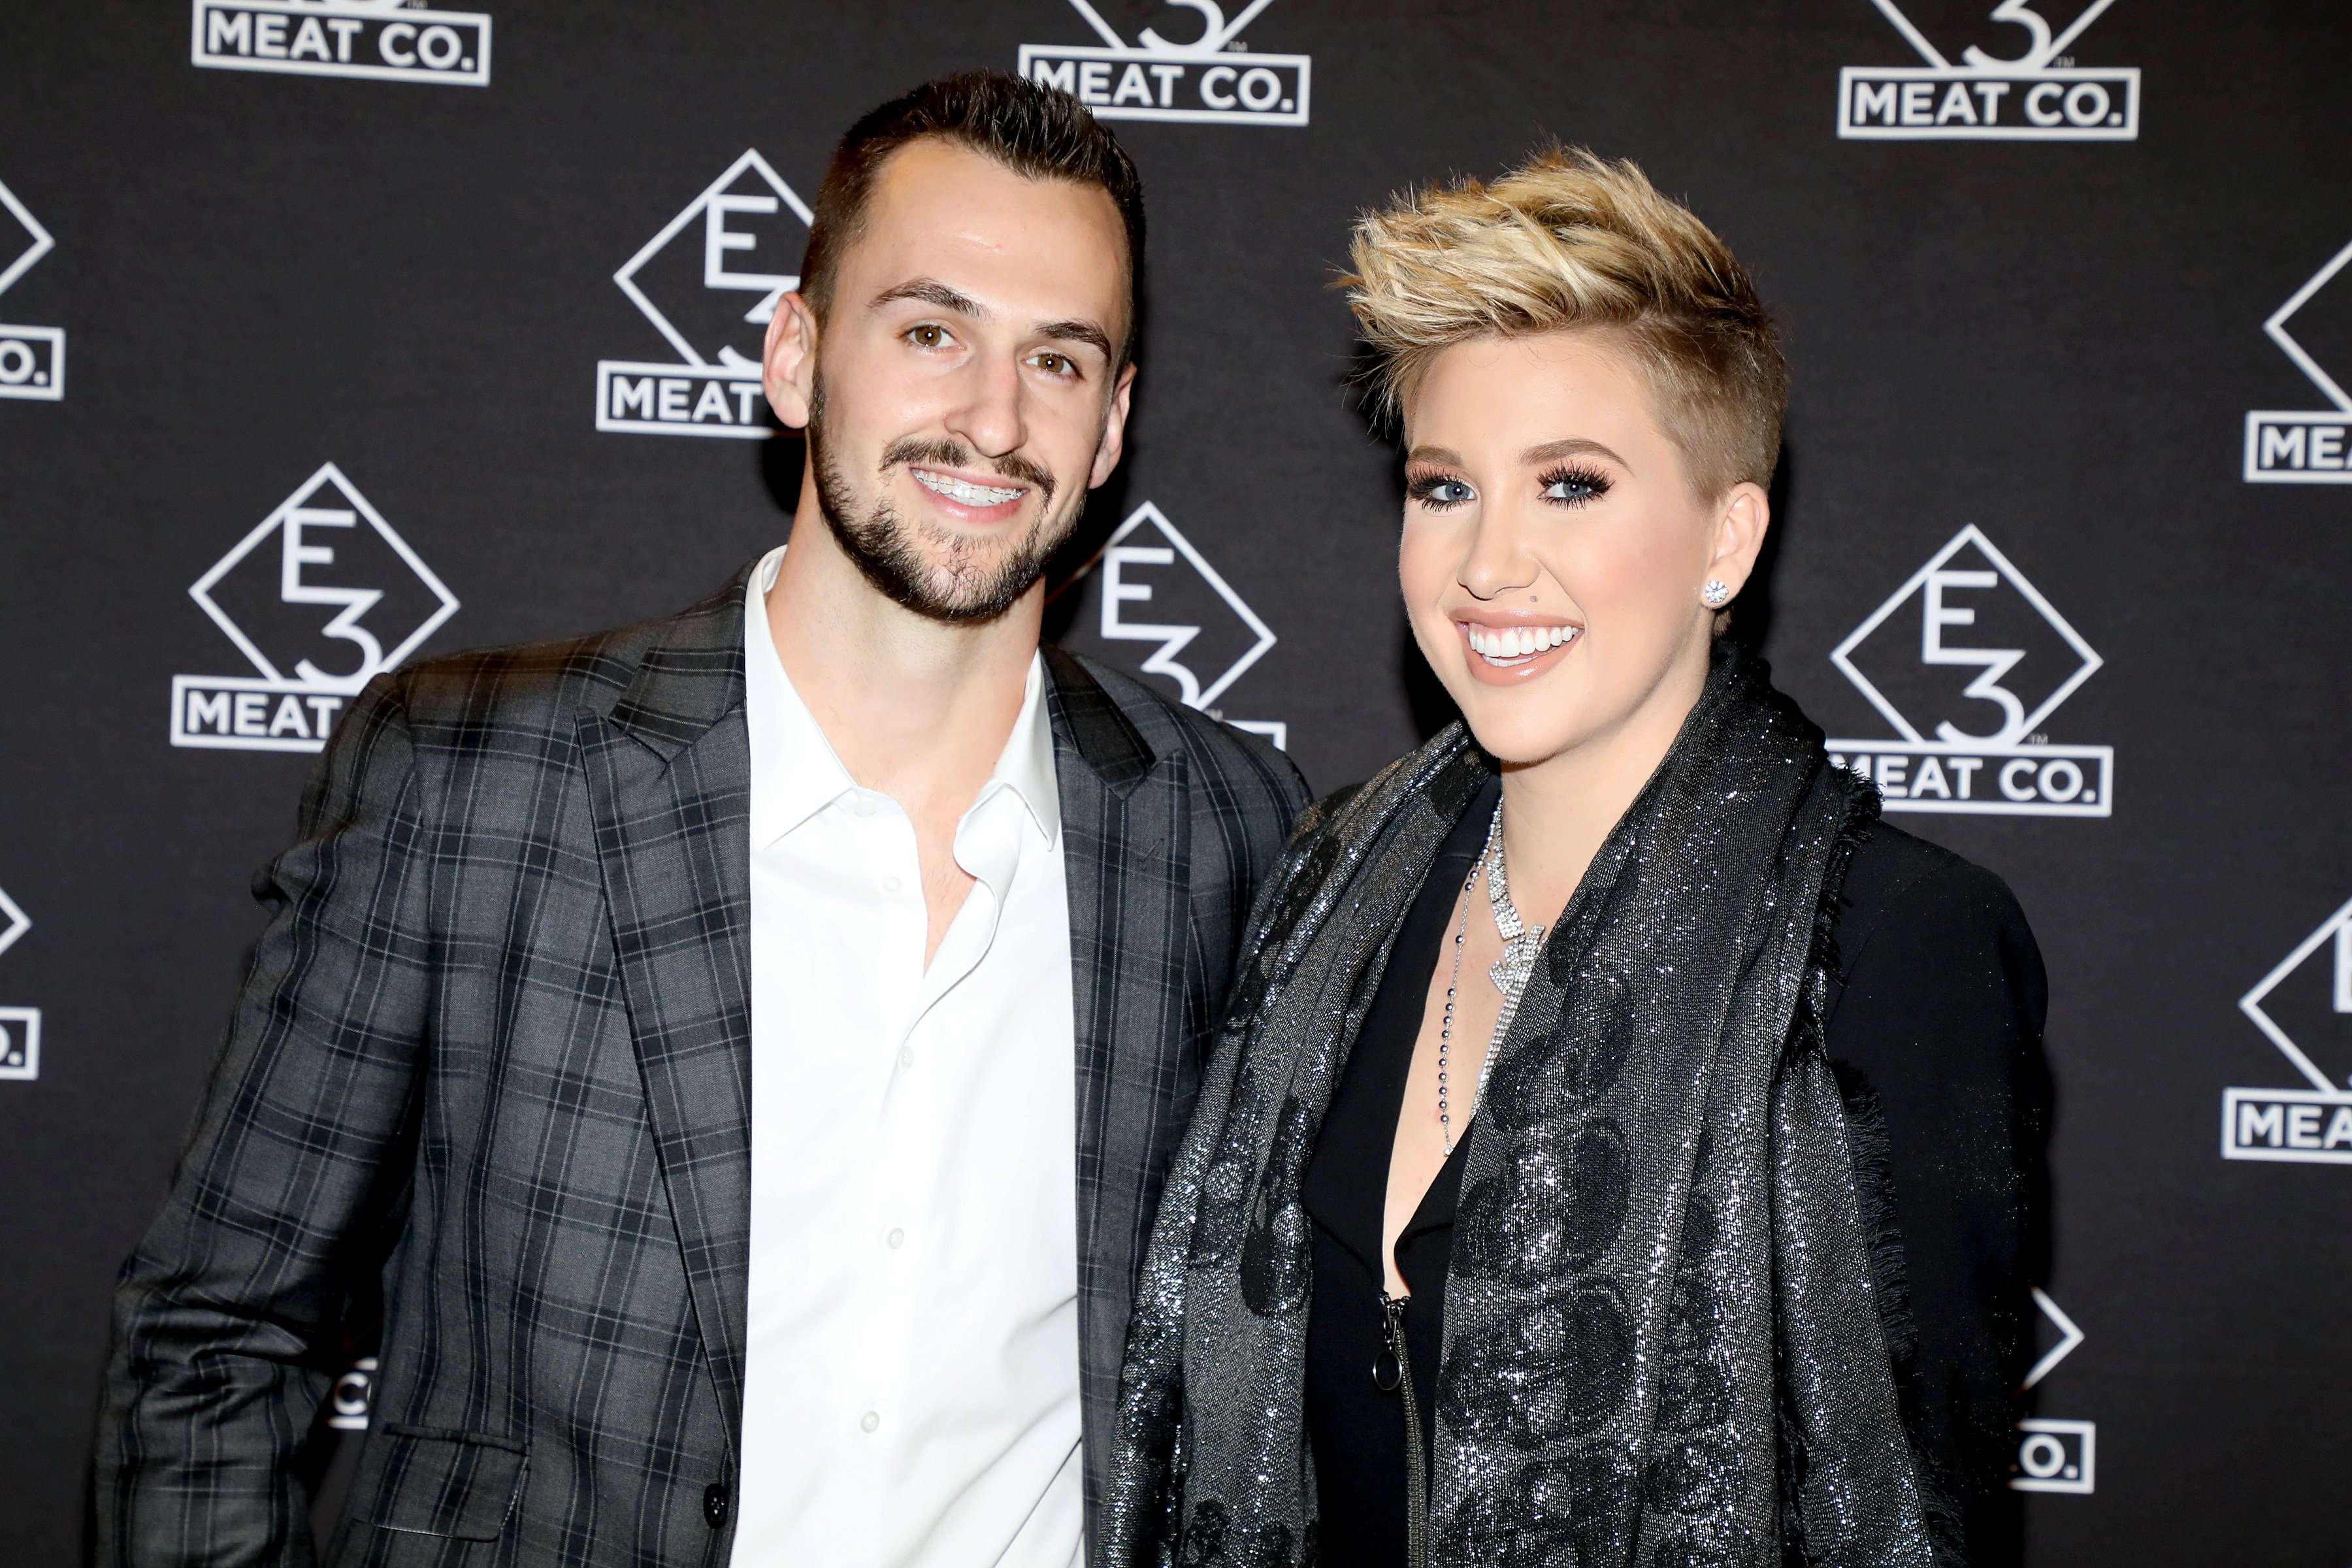 Nic Kerdiles and Savannah Chrisley attend the grand opening of E3 Chophouse Nashville on November 20, 2019, in Nashville, Tennessee.   Source: Getty Images.